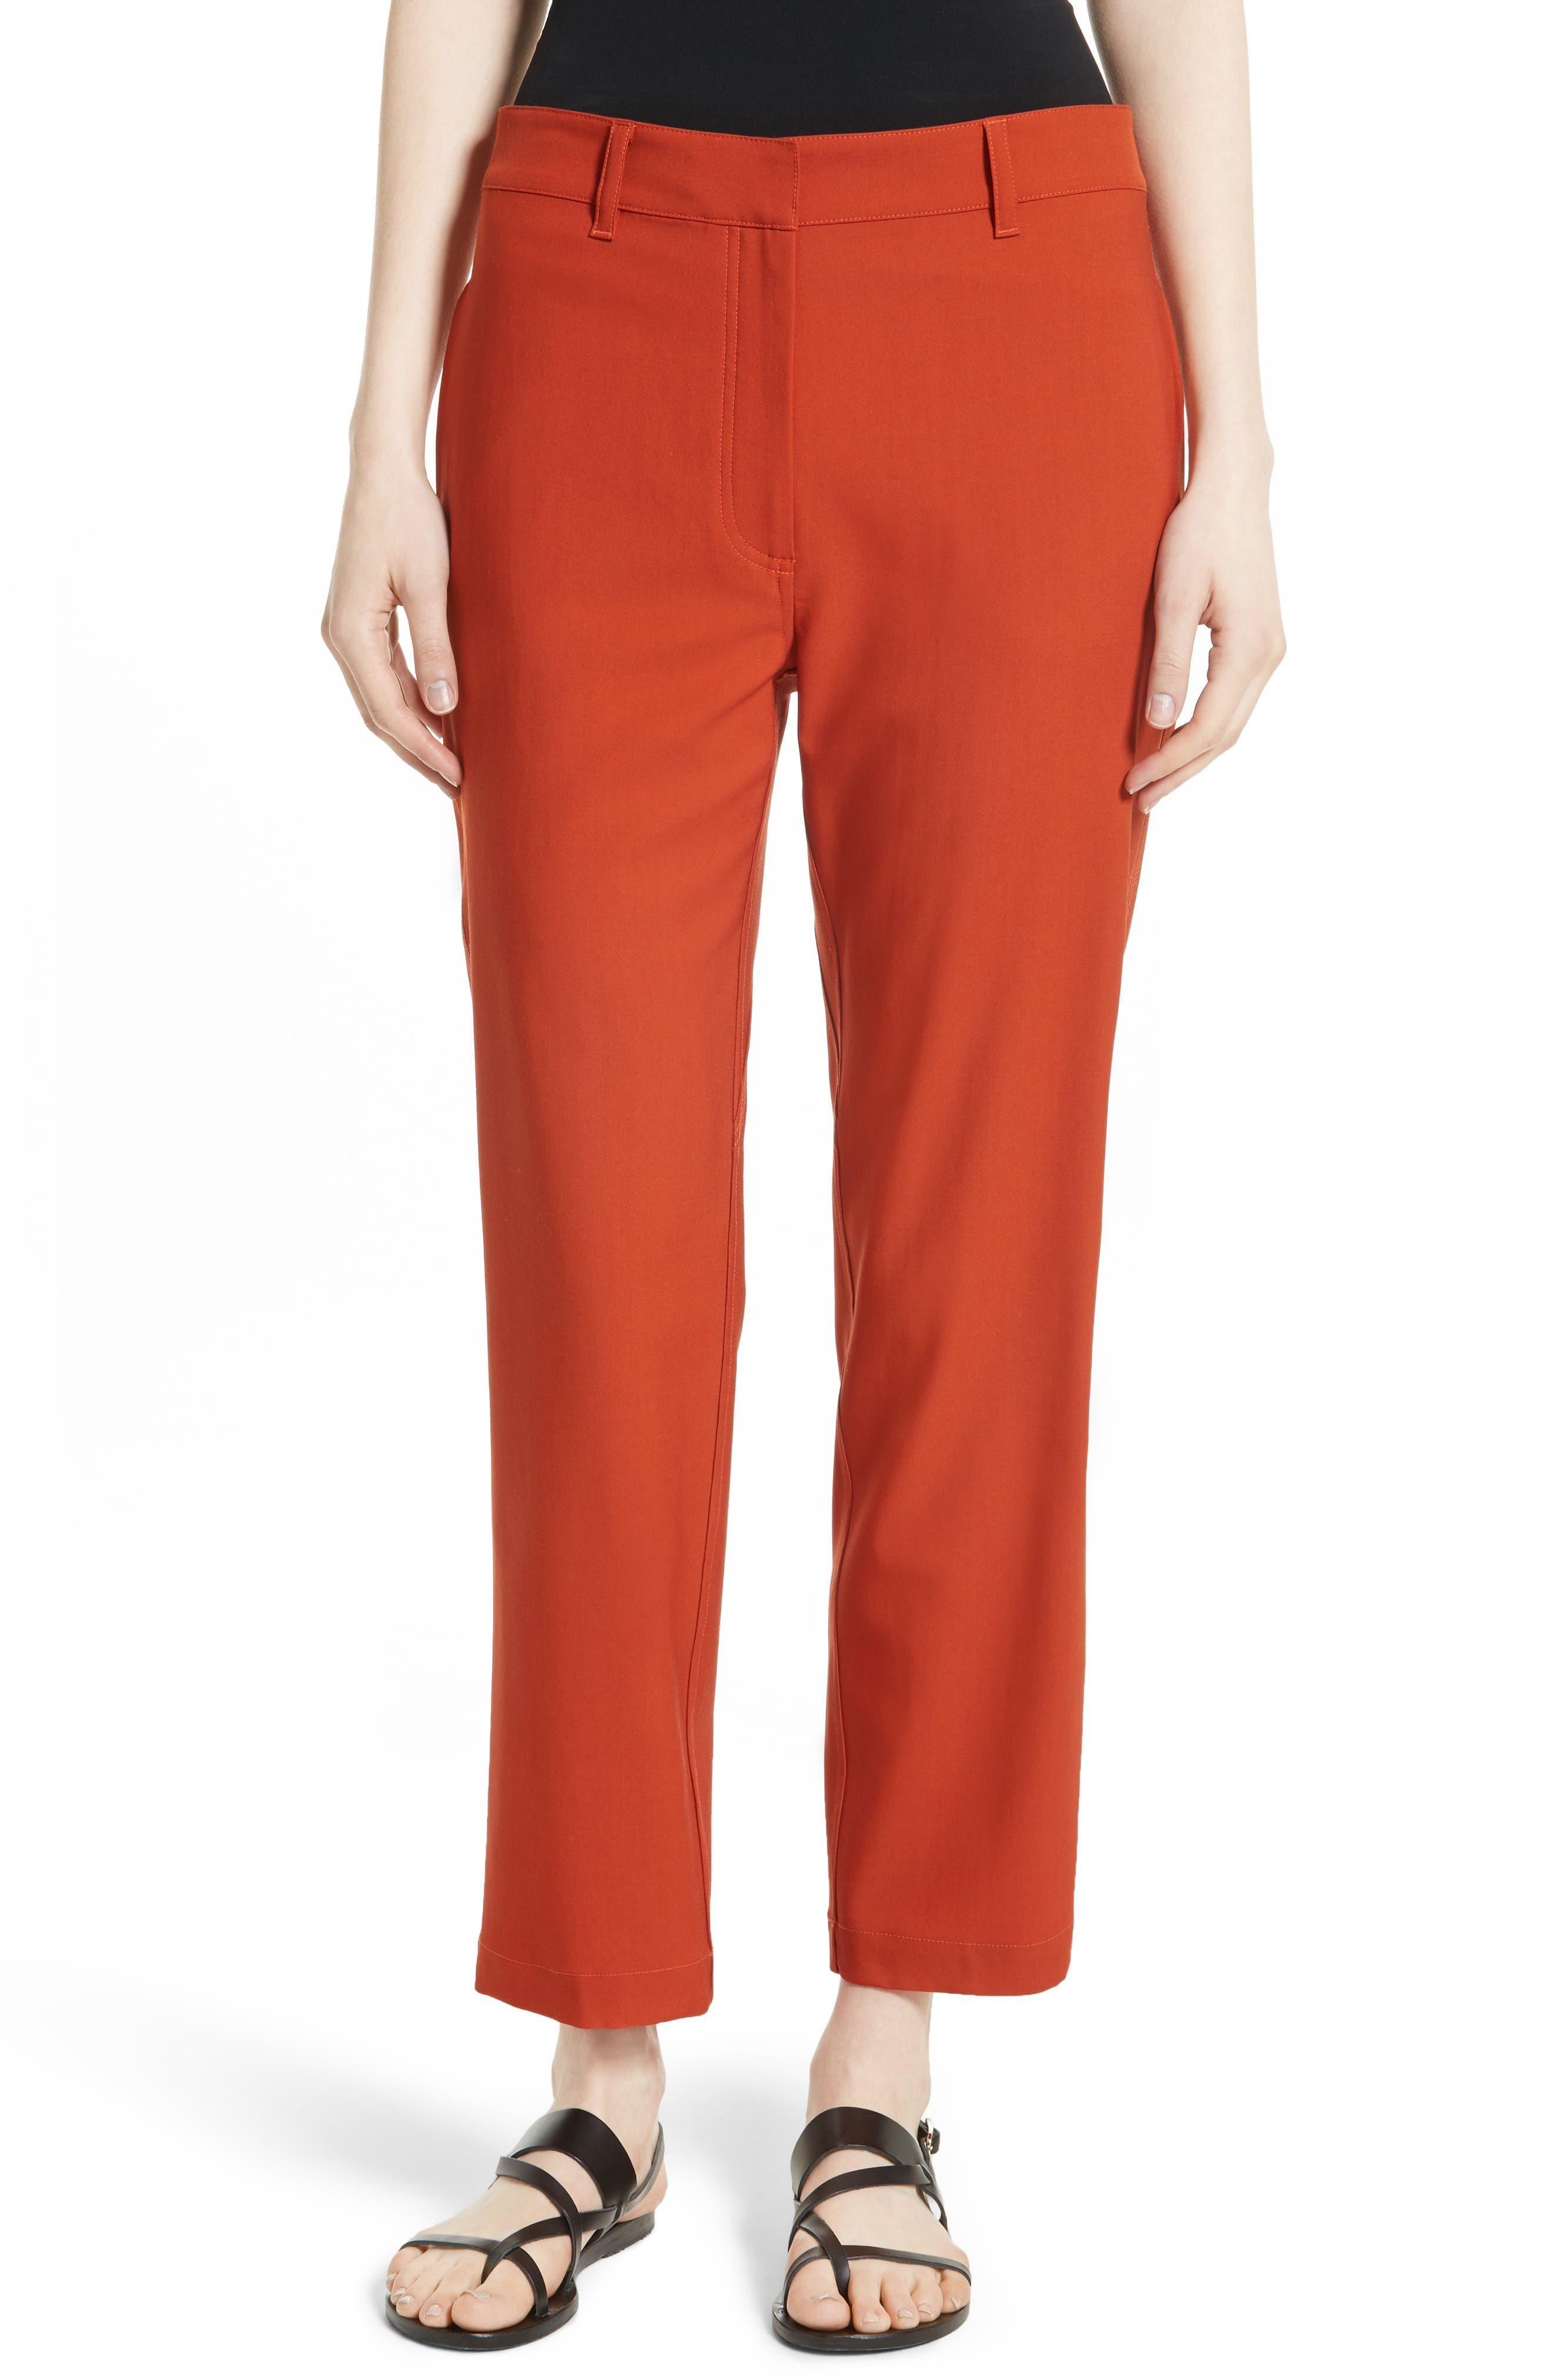 Thorelle B New Stretch Wool Pants,                         Main,                         color, Dark Marmalade